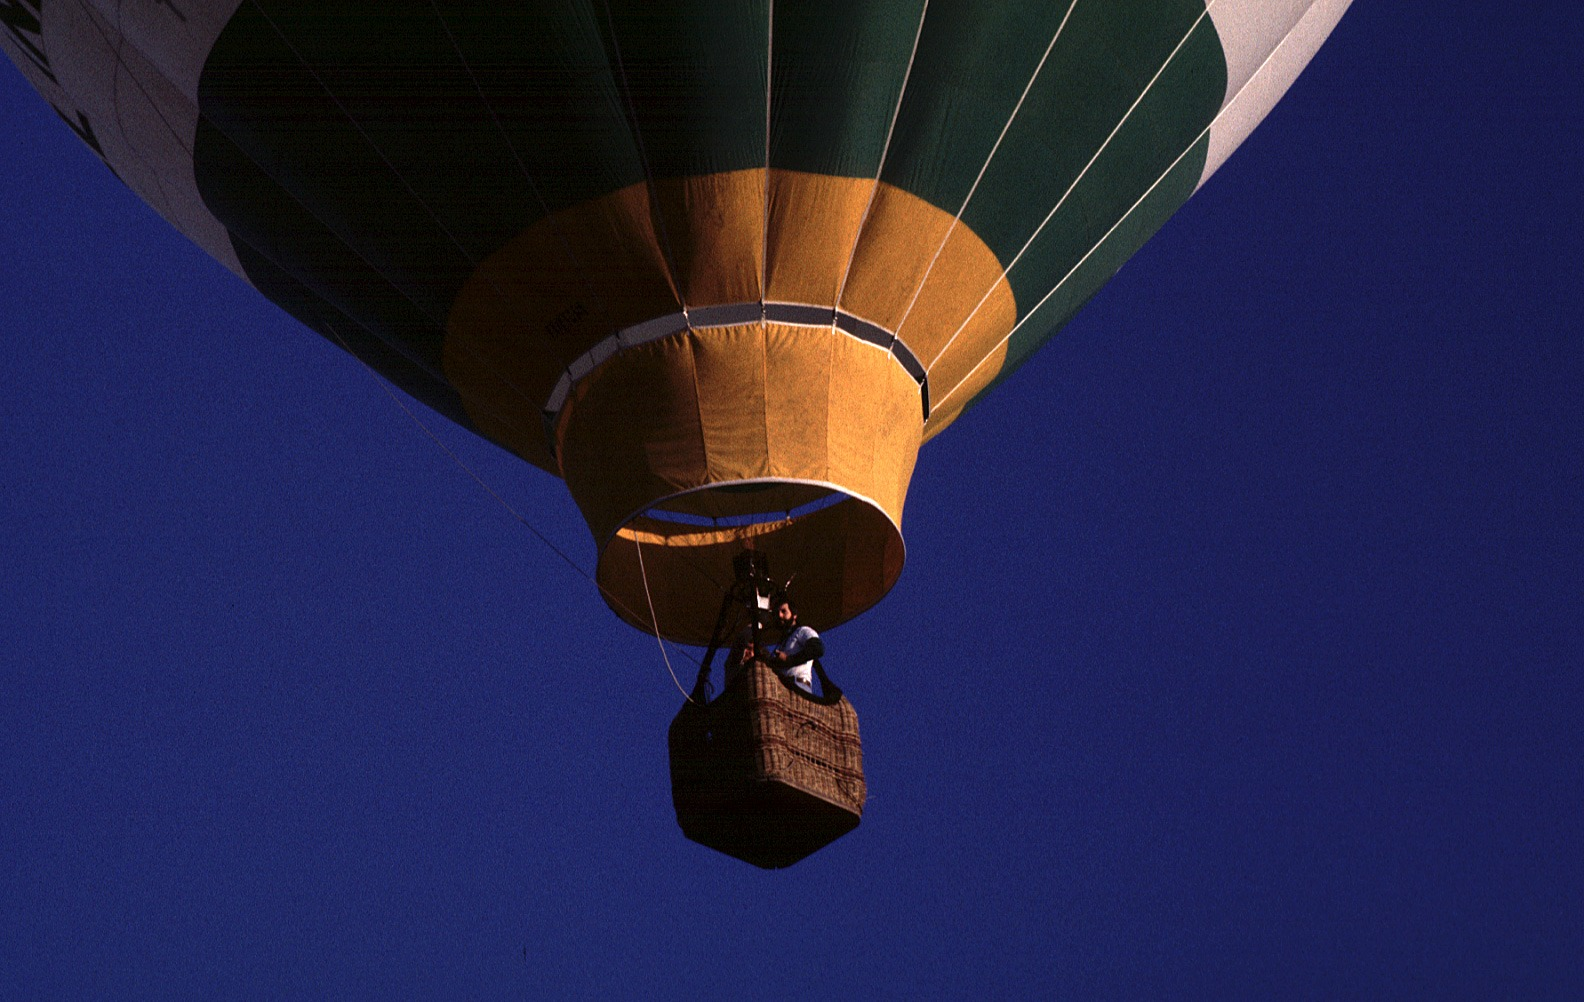 The 7 types of people you always meet in hot air balloons.